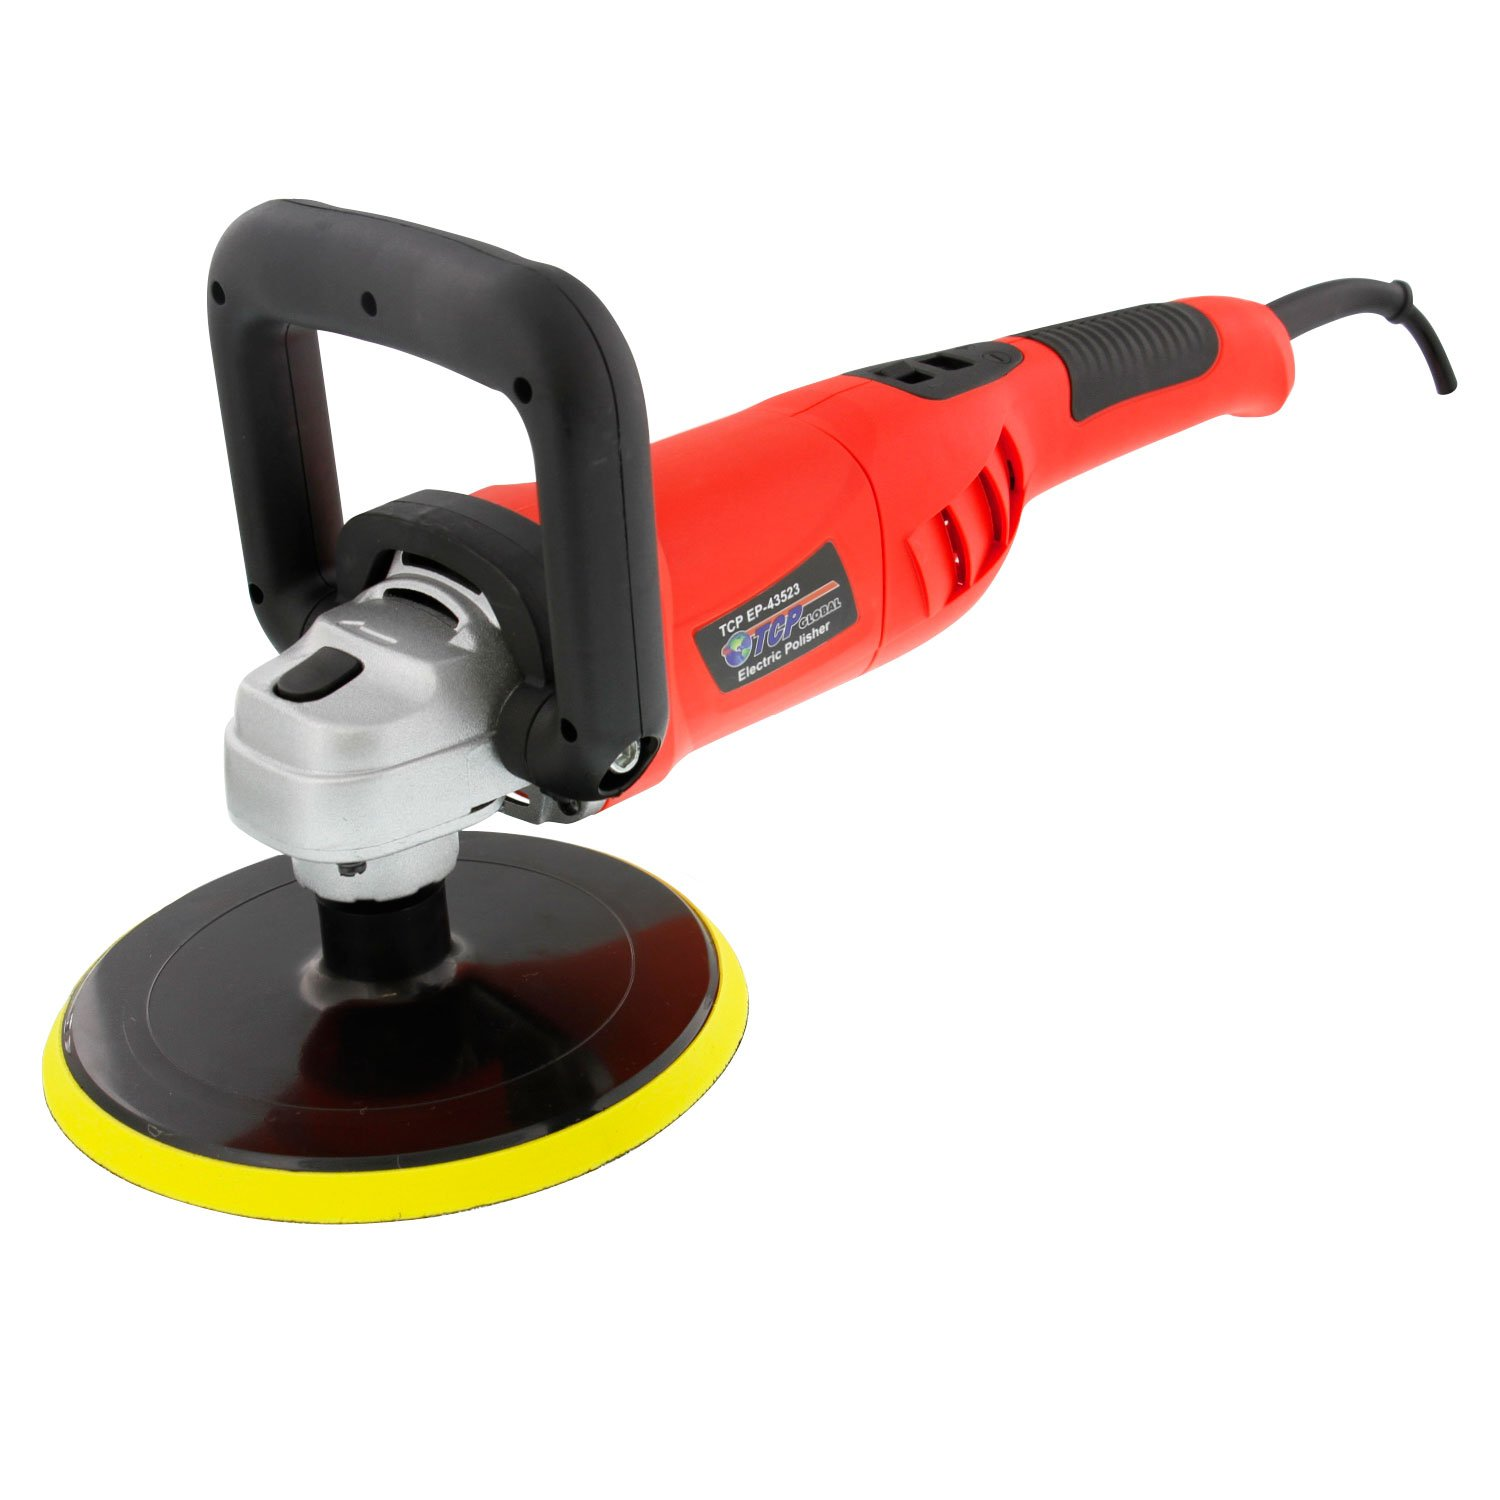 TCP Global 7'' Variable Speed Polisher with Digital RPM Display; Professional High Performance Polisher with a Powerful 10 Amp, 1200 Watt Motor by TCP Global (Image #3)